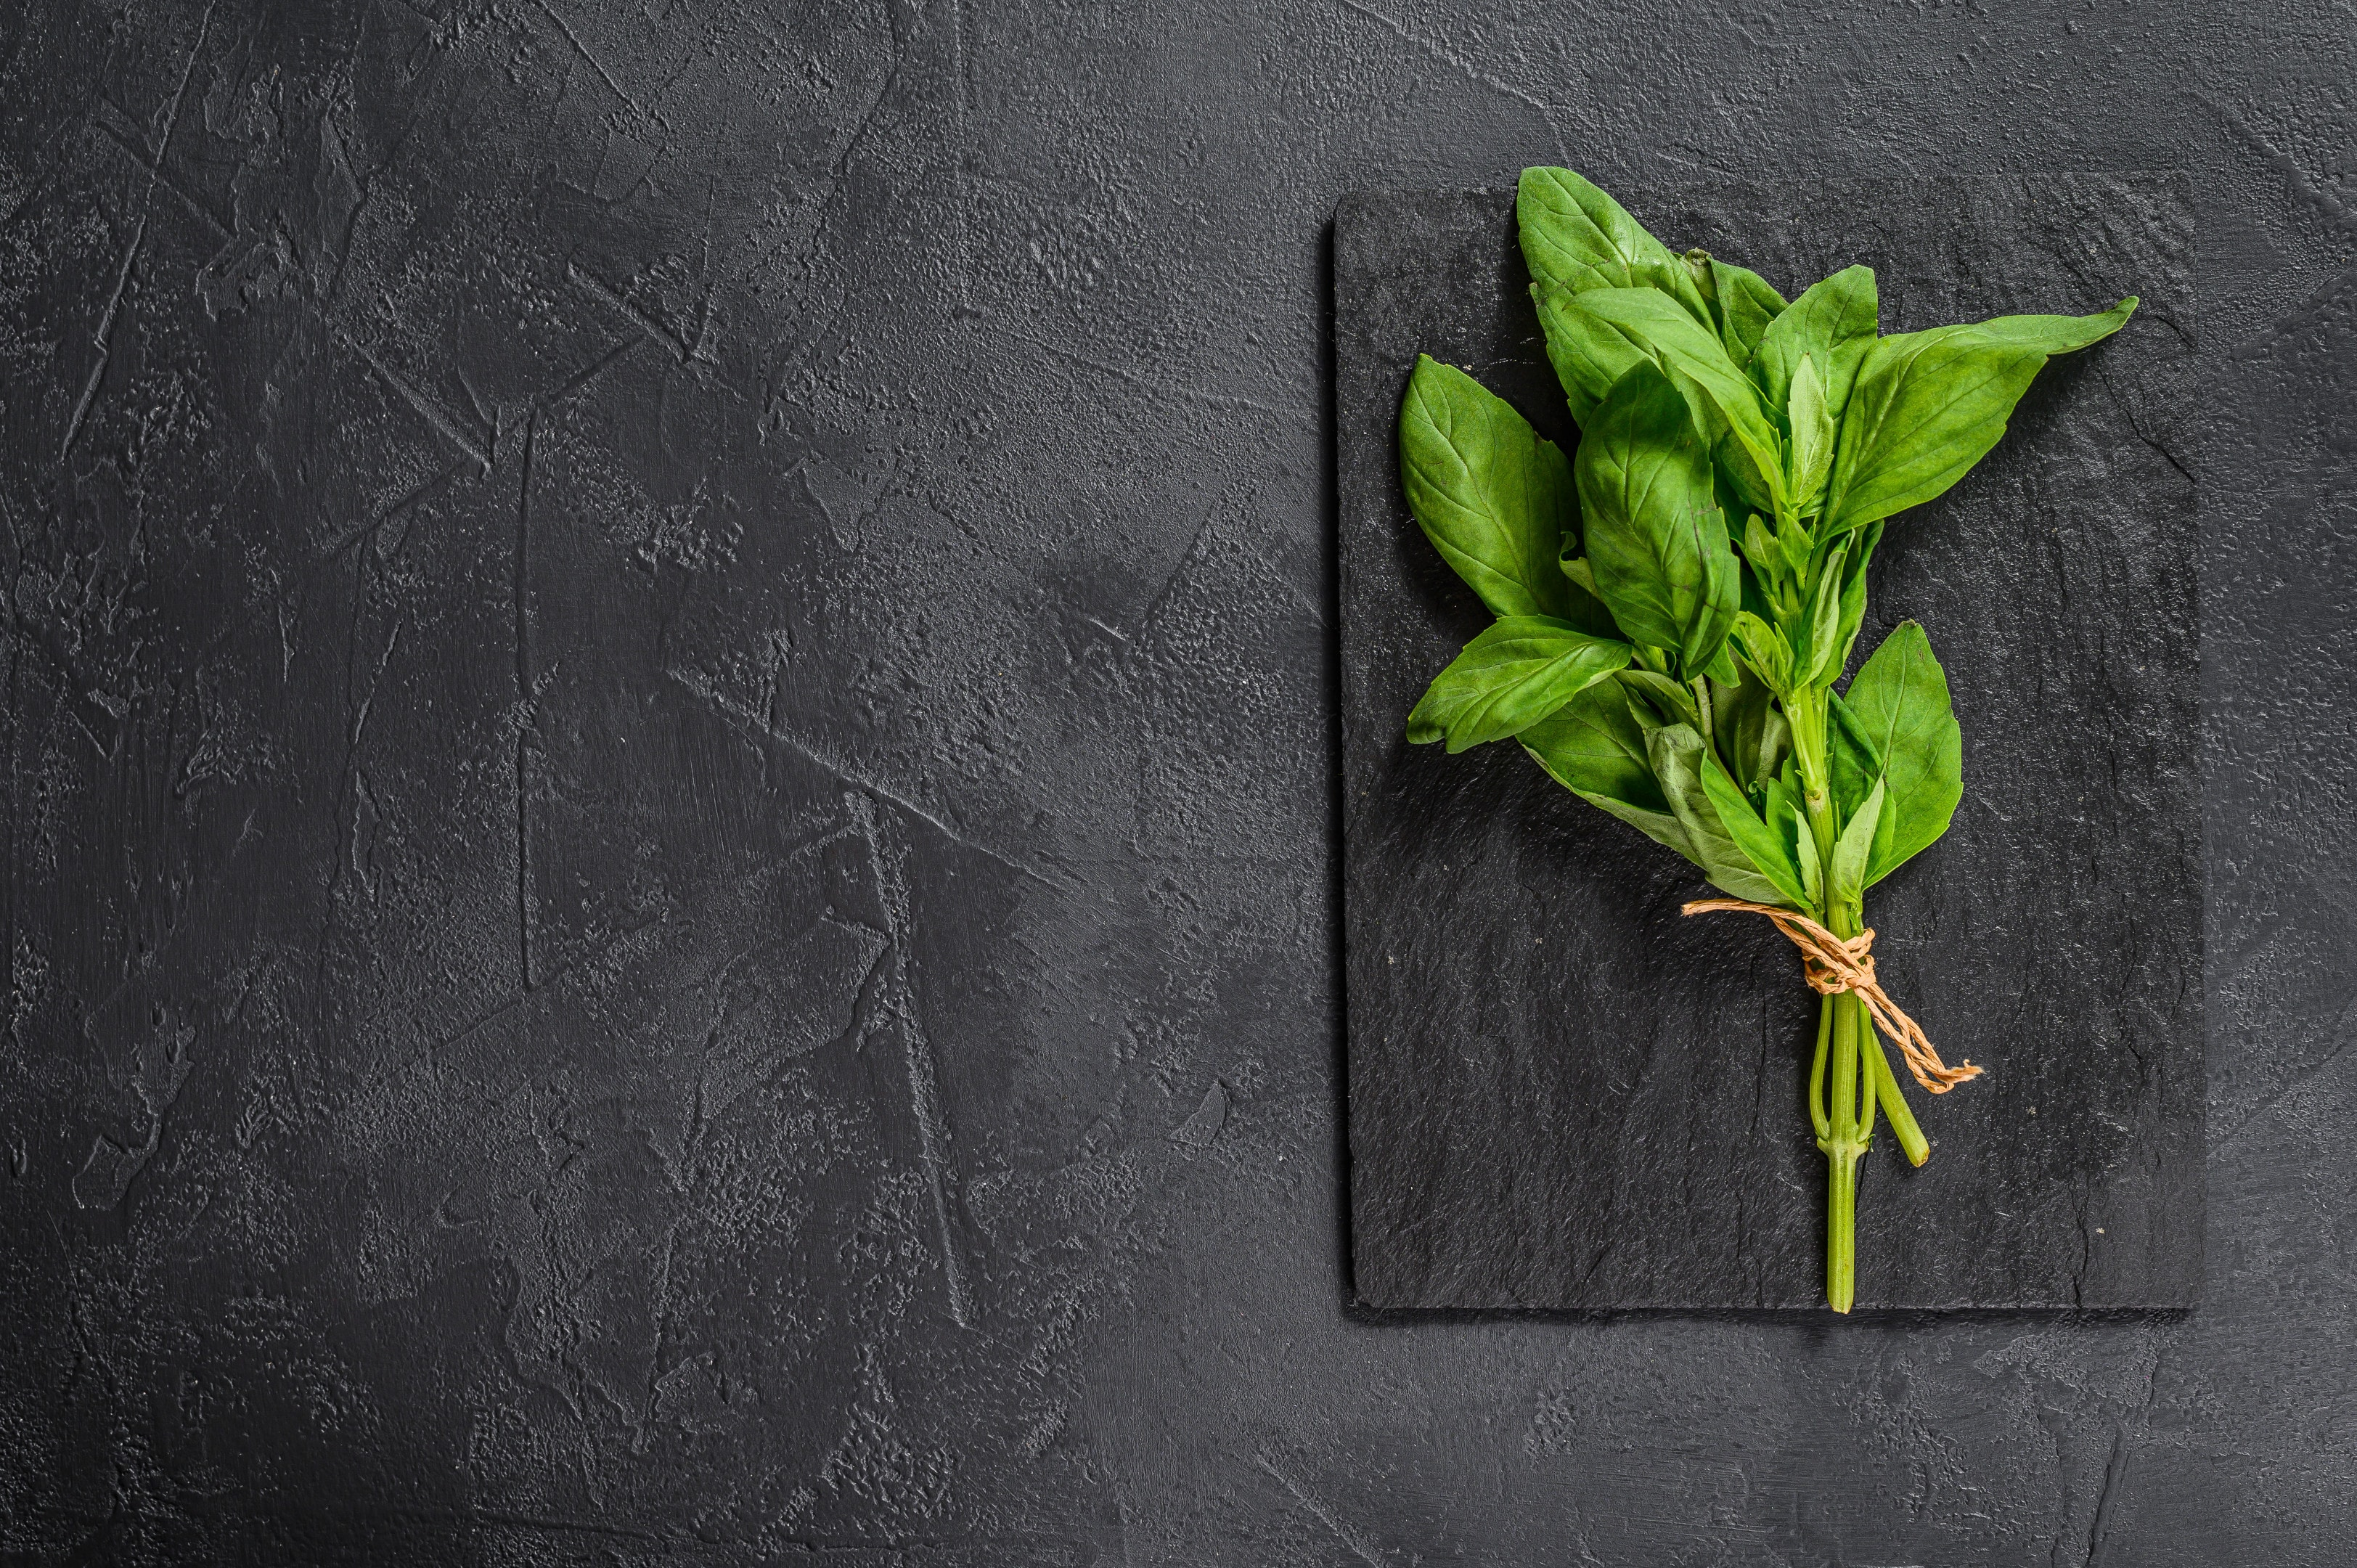 Sprig of fresh basil on stone board on stone table